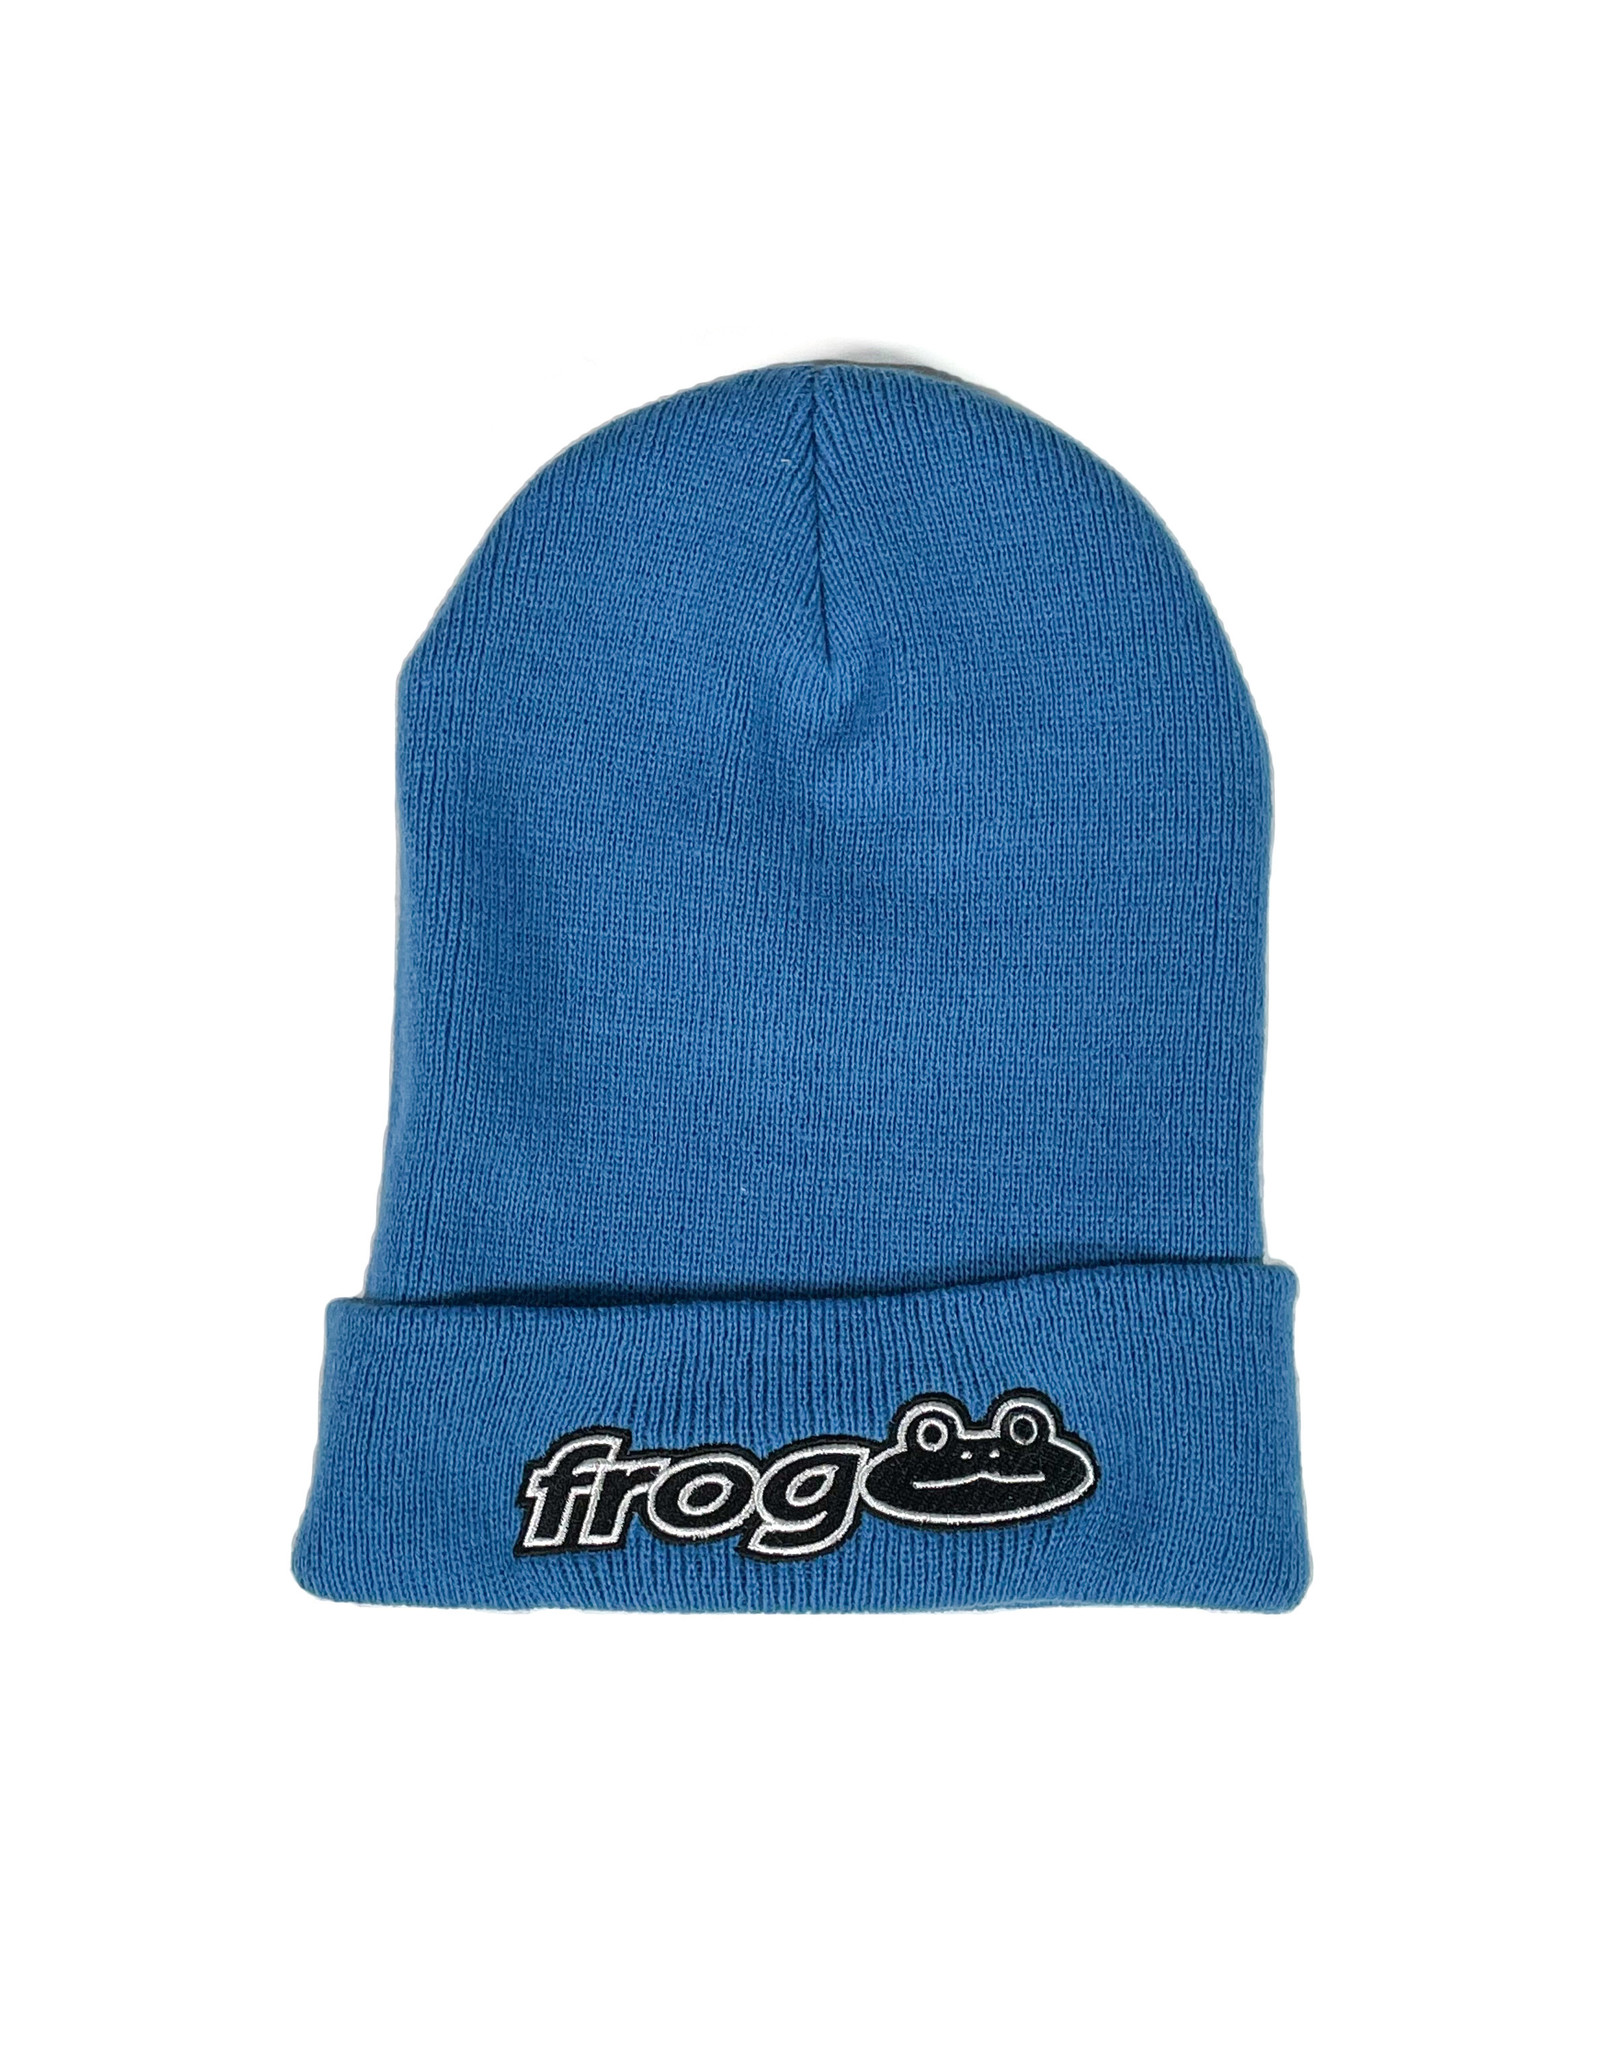 FROG FROG WORKS! BEANIE - CAR BLUE